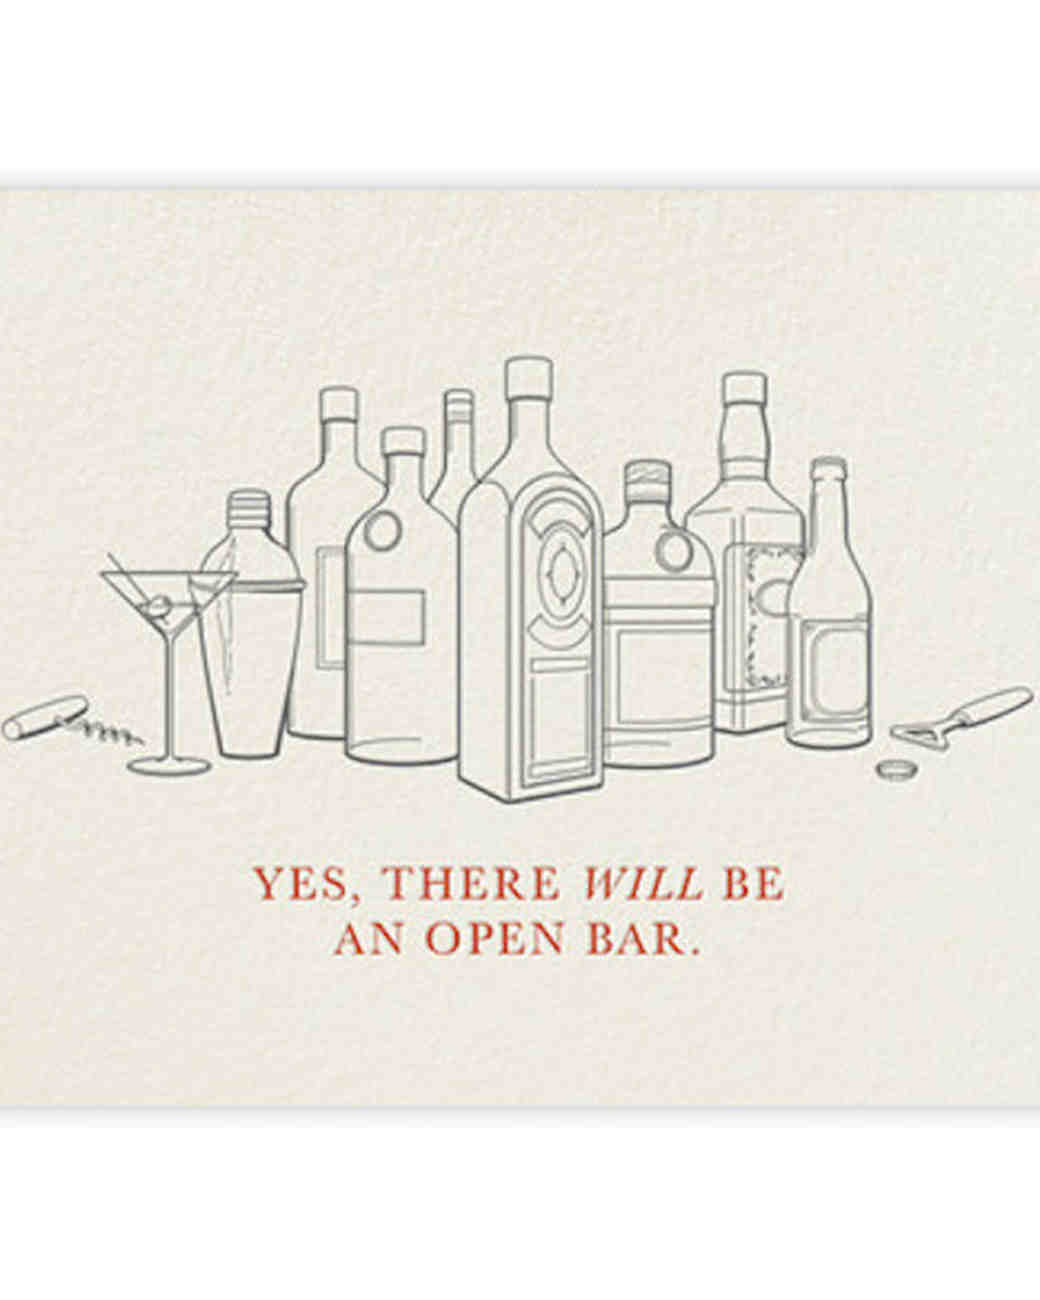 paperless-engagement-party-invitations-paperless-post-open-bar-0416.jpg